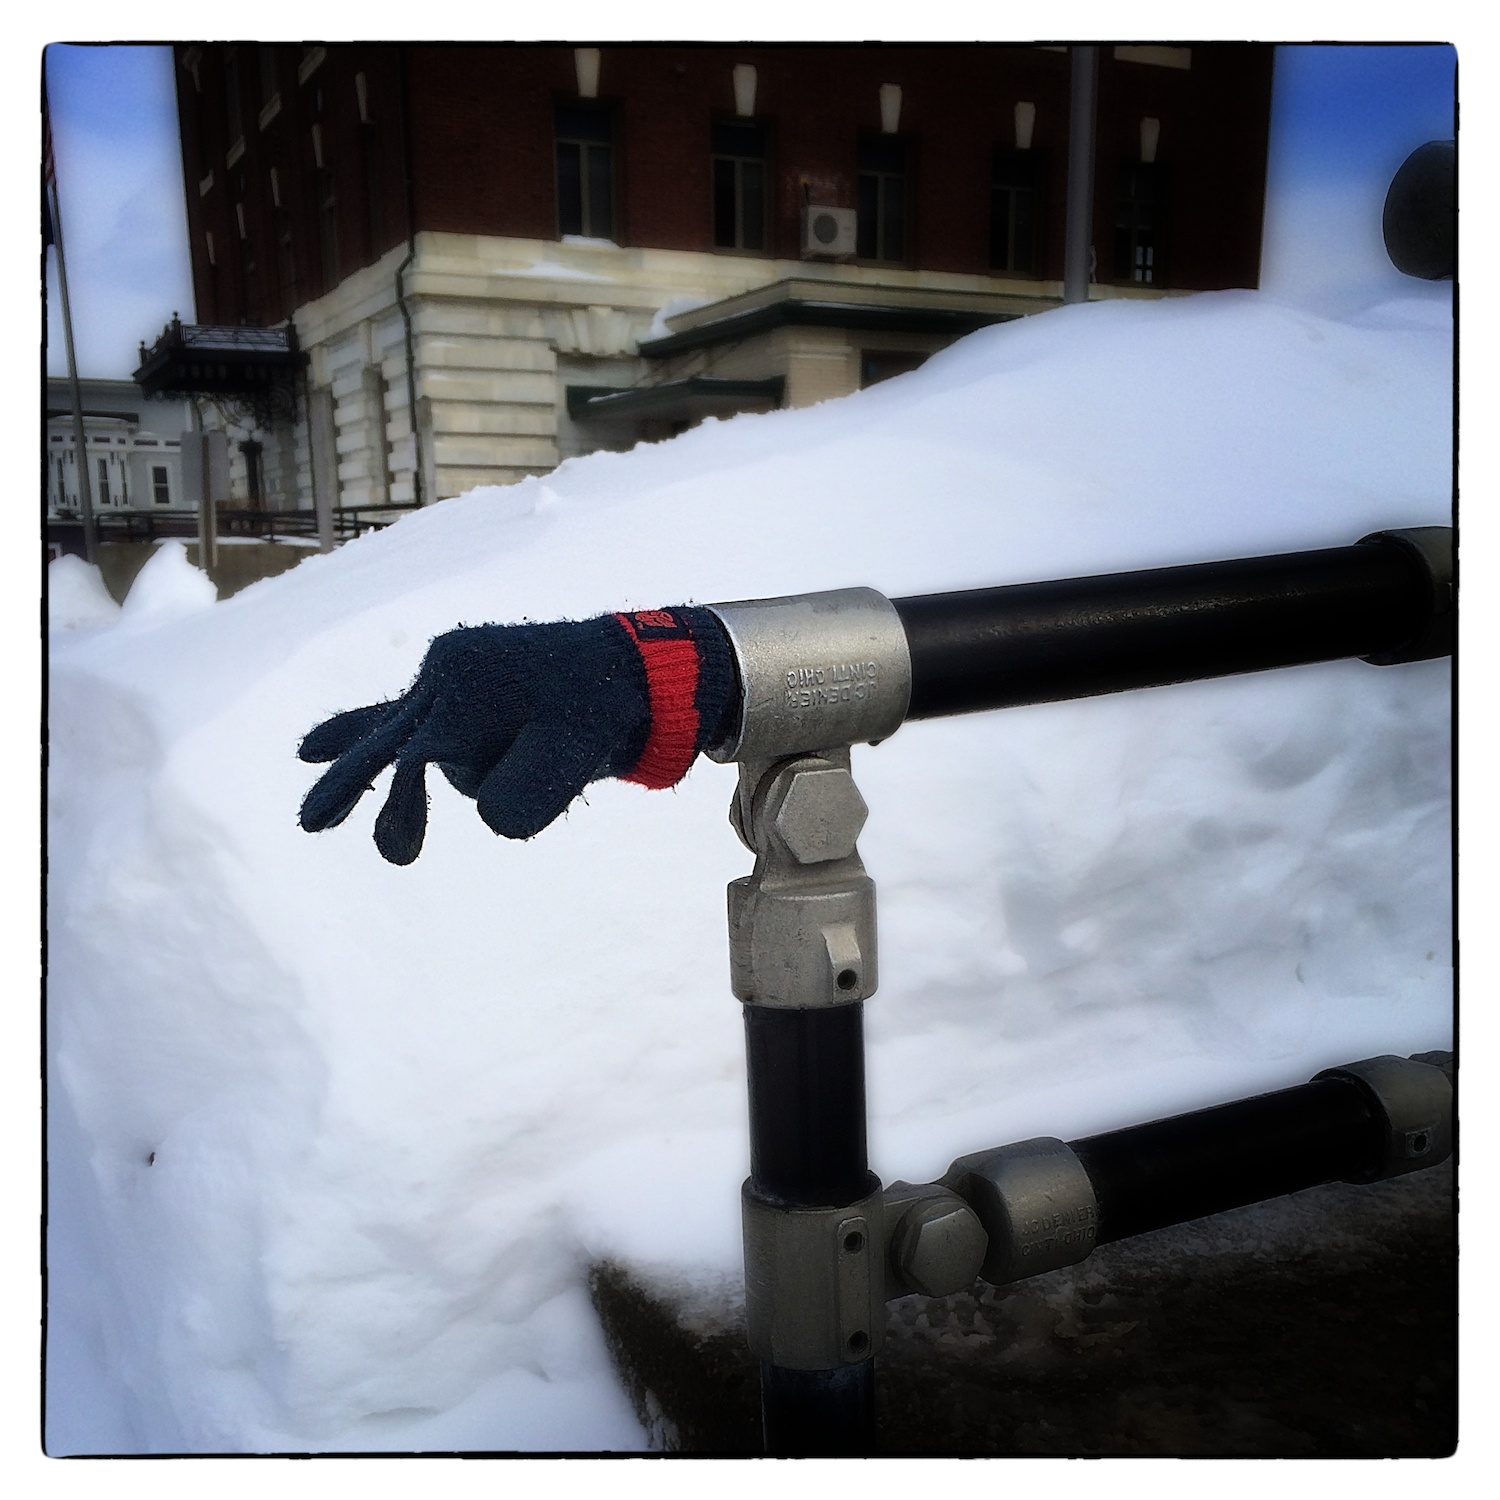 A glove warms the hand rail at the Orleans County Superior Courthouse in Newport, Vt., shot February 18, 2014. The U.S. Courthouse is in the background.